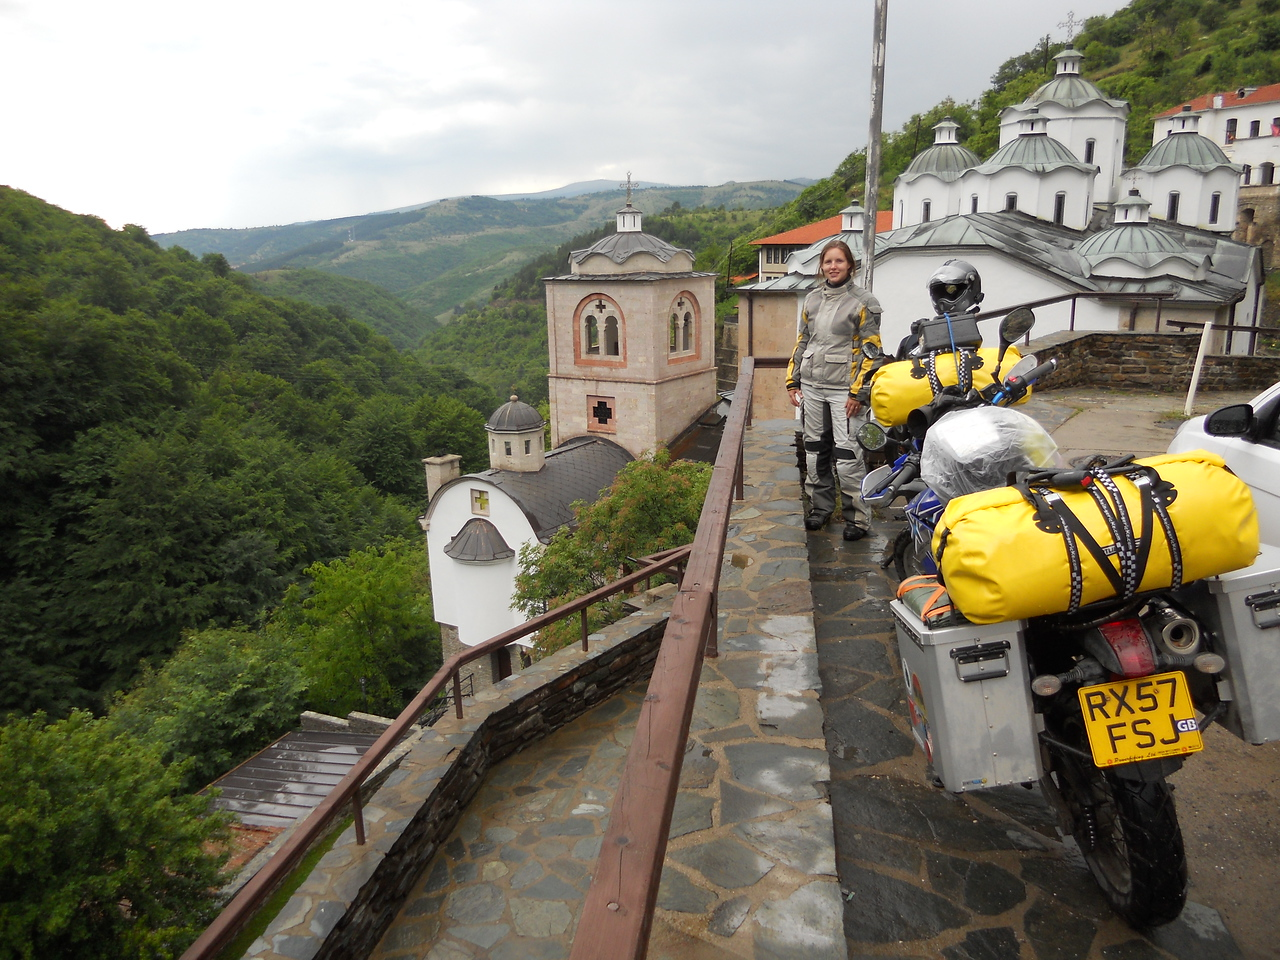 Just as it starts to rain with intent, we reach the Sveti Joakim Osogovski monestary which takes our breath away.